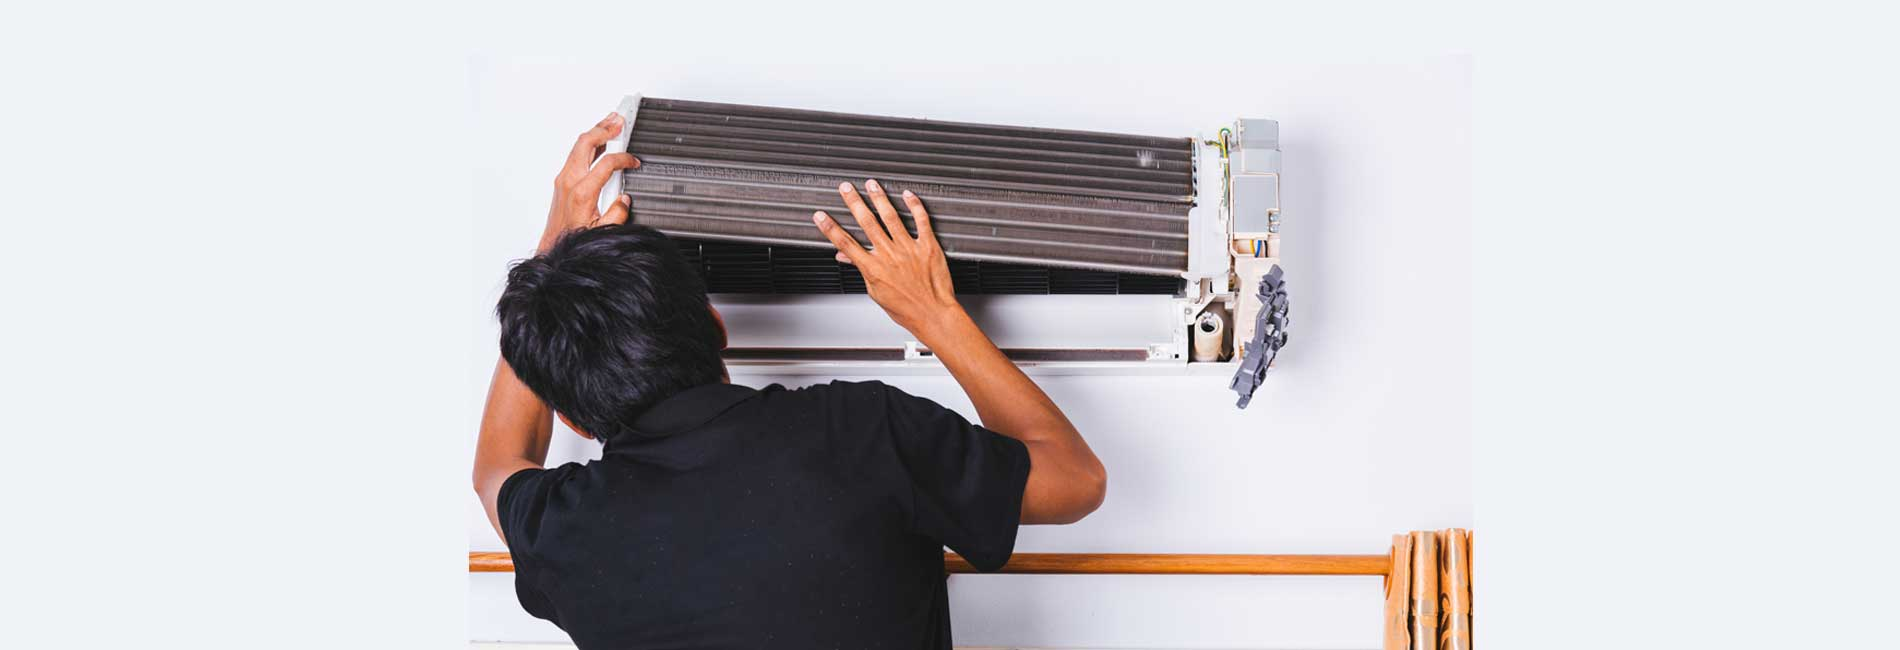 LG AC Uninstallation and Installation in East Tambaram